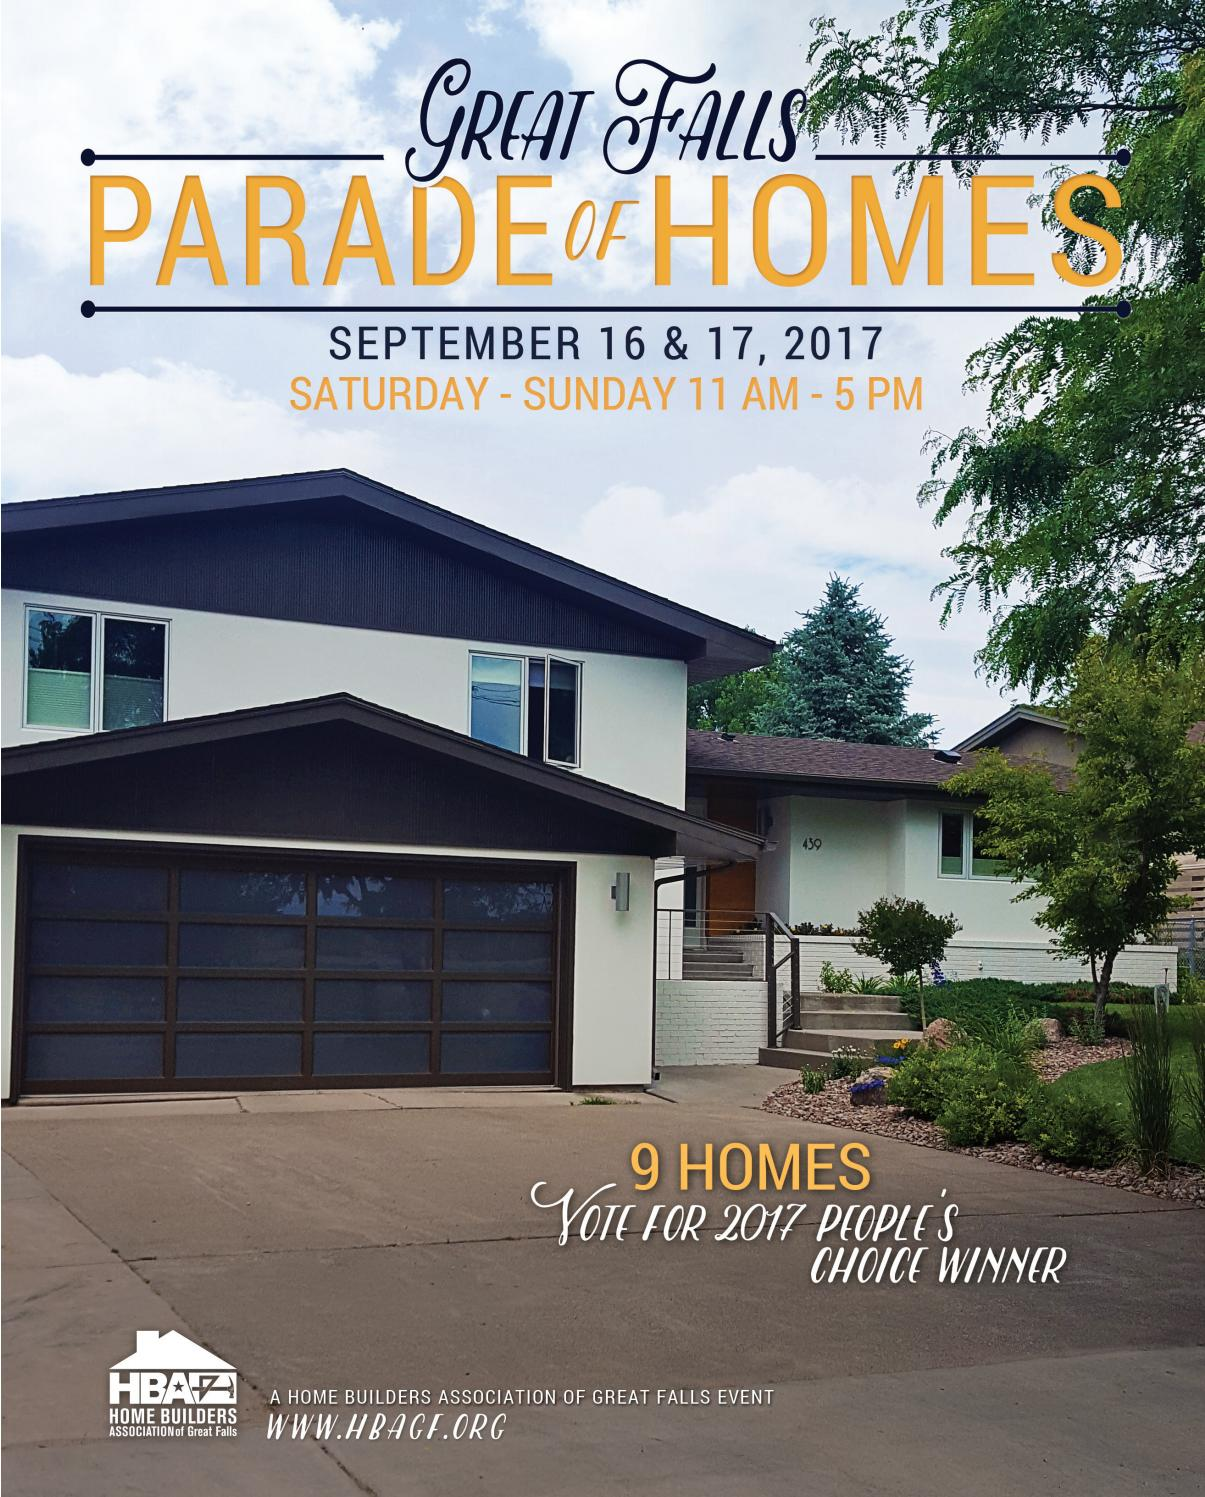 Great Falls Parade Of Homes 2017 By Deanna Johnson Issuu